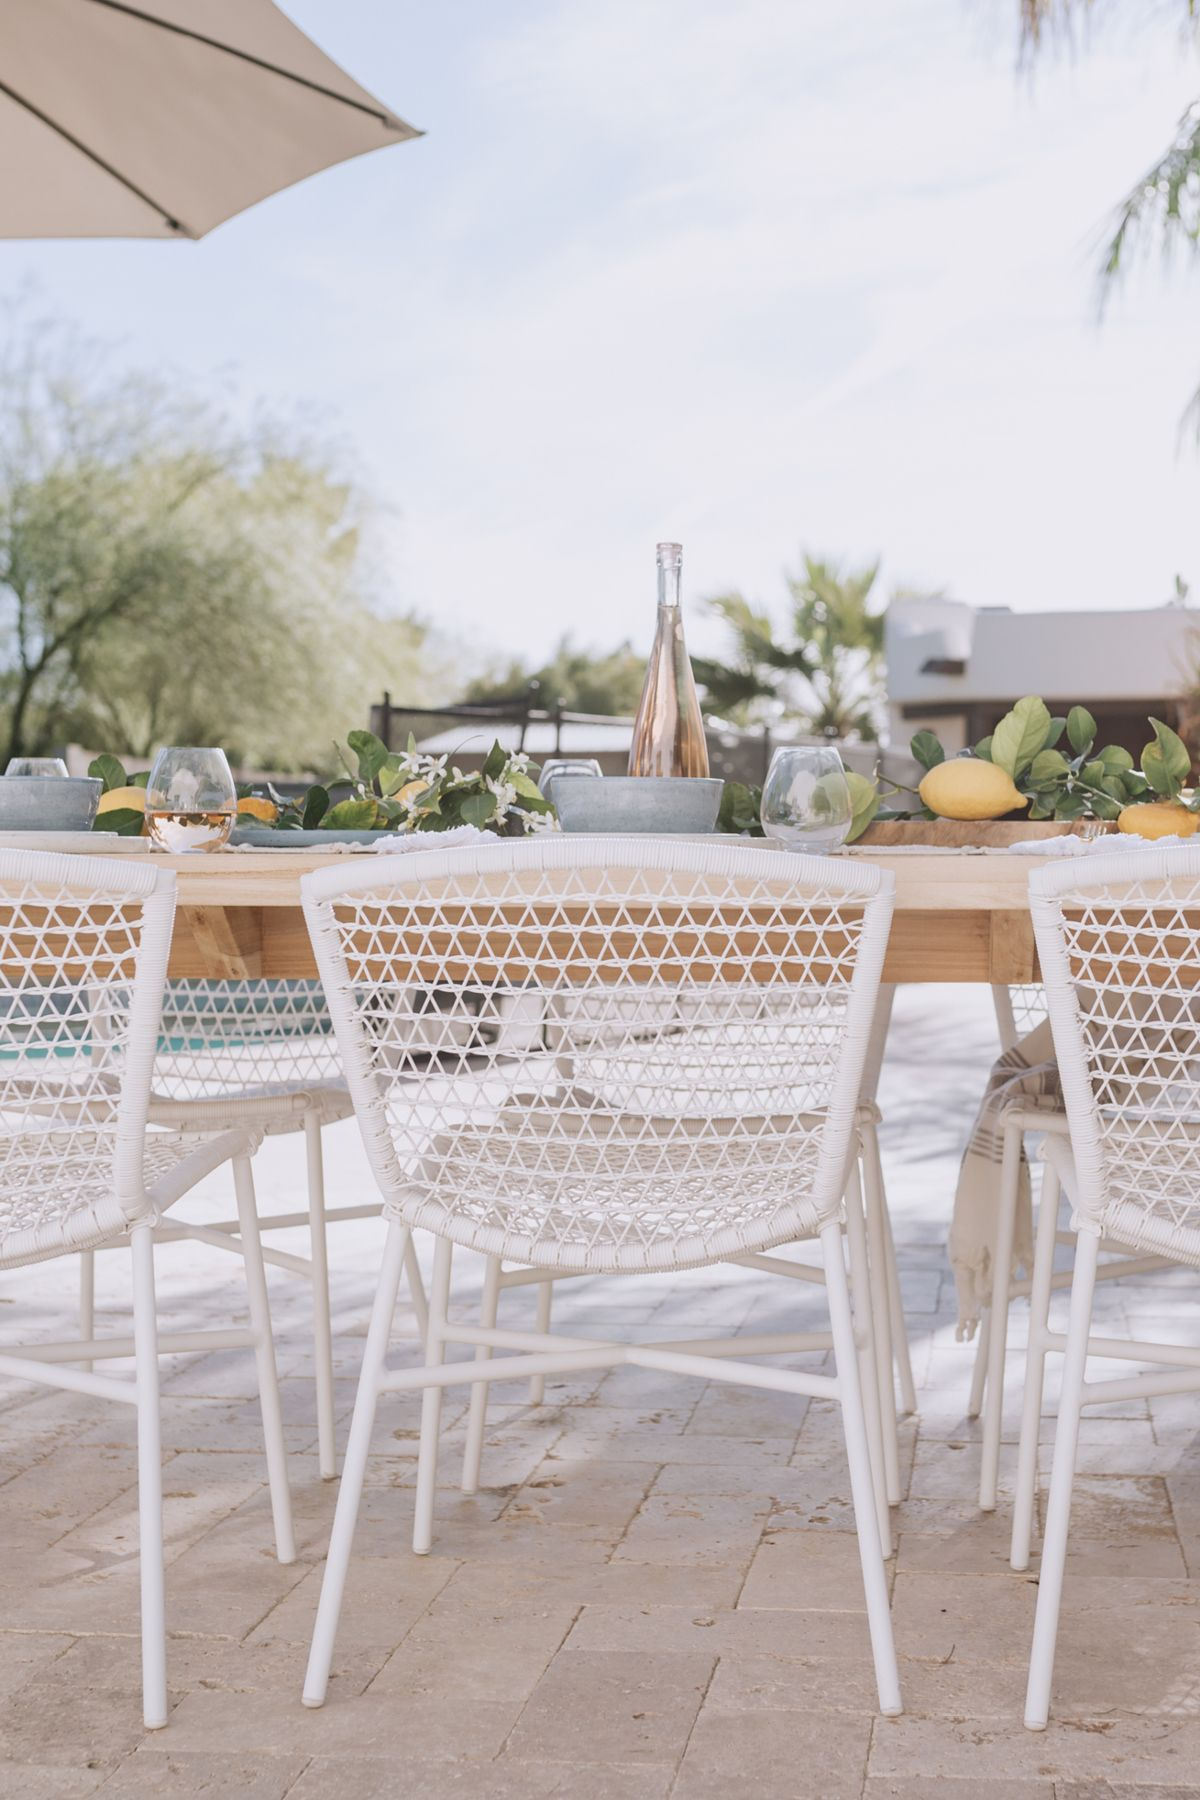 Sala White Dining Chair White Outdoor Furniture Outdoor Dining Chairs Outdoor Dining Spaces